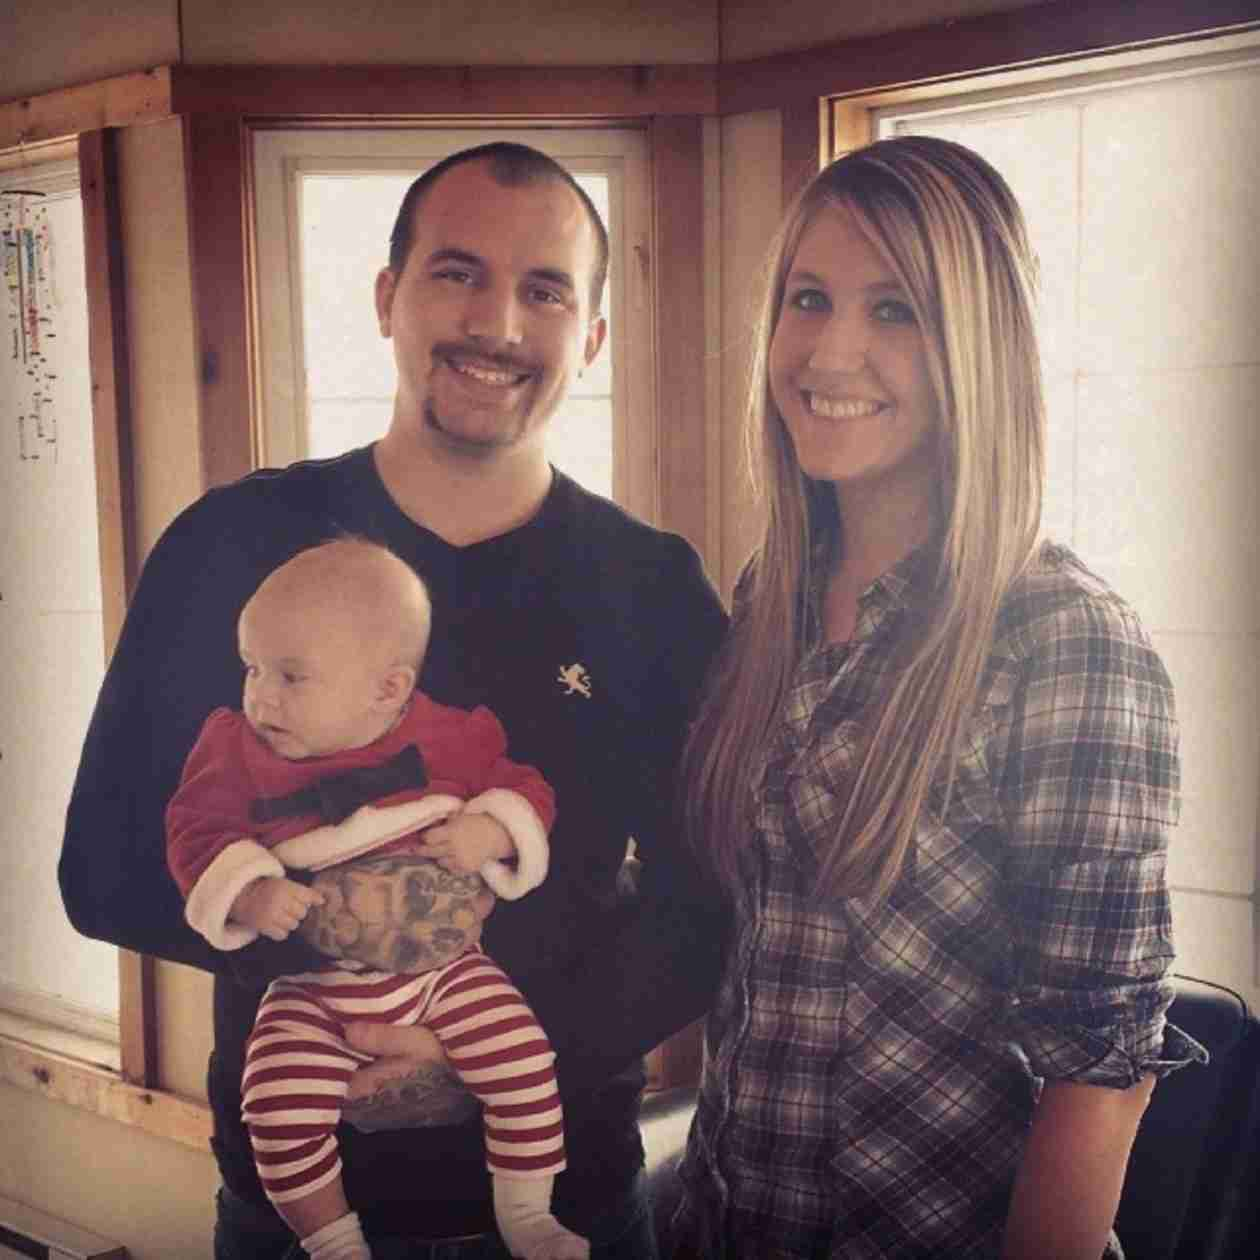 Adam Lind and Taylor Halbur Take Aubree Bowling With Baby Paislee (PHOTO)